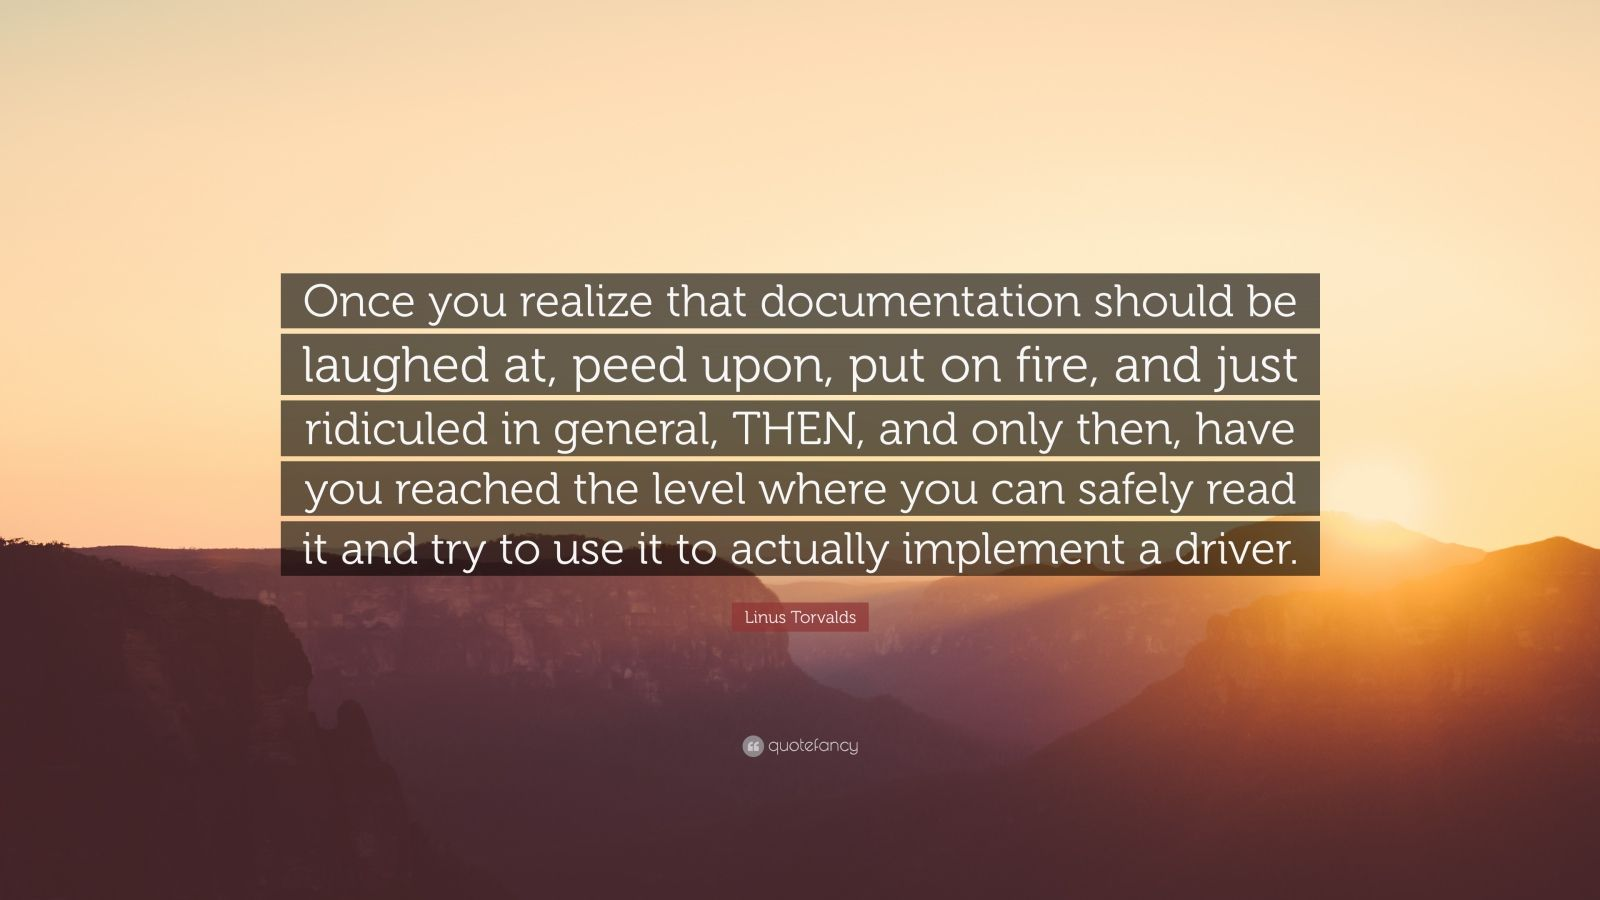 """Linus Torvalds Quote: """"Once you realize that documentation should be laughed at, peed upon, put on fire, and just ridiculed in general, THEN, and only then, have you reached the level where you can safely read it and try to use it to actually implement a driver."""""""